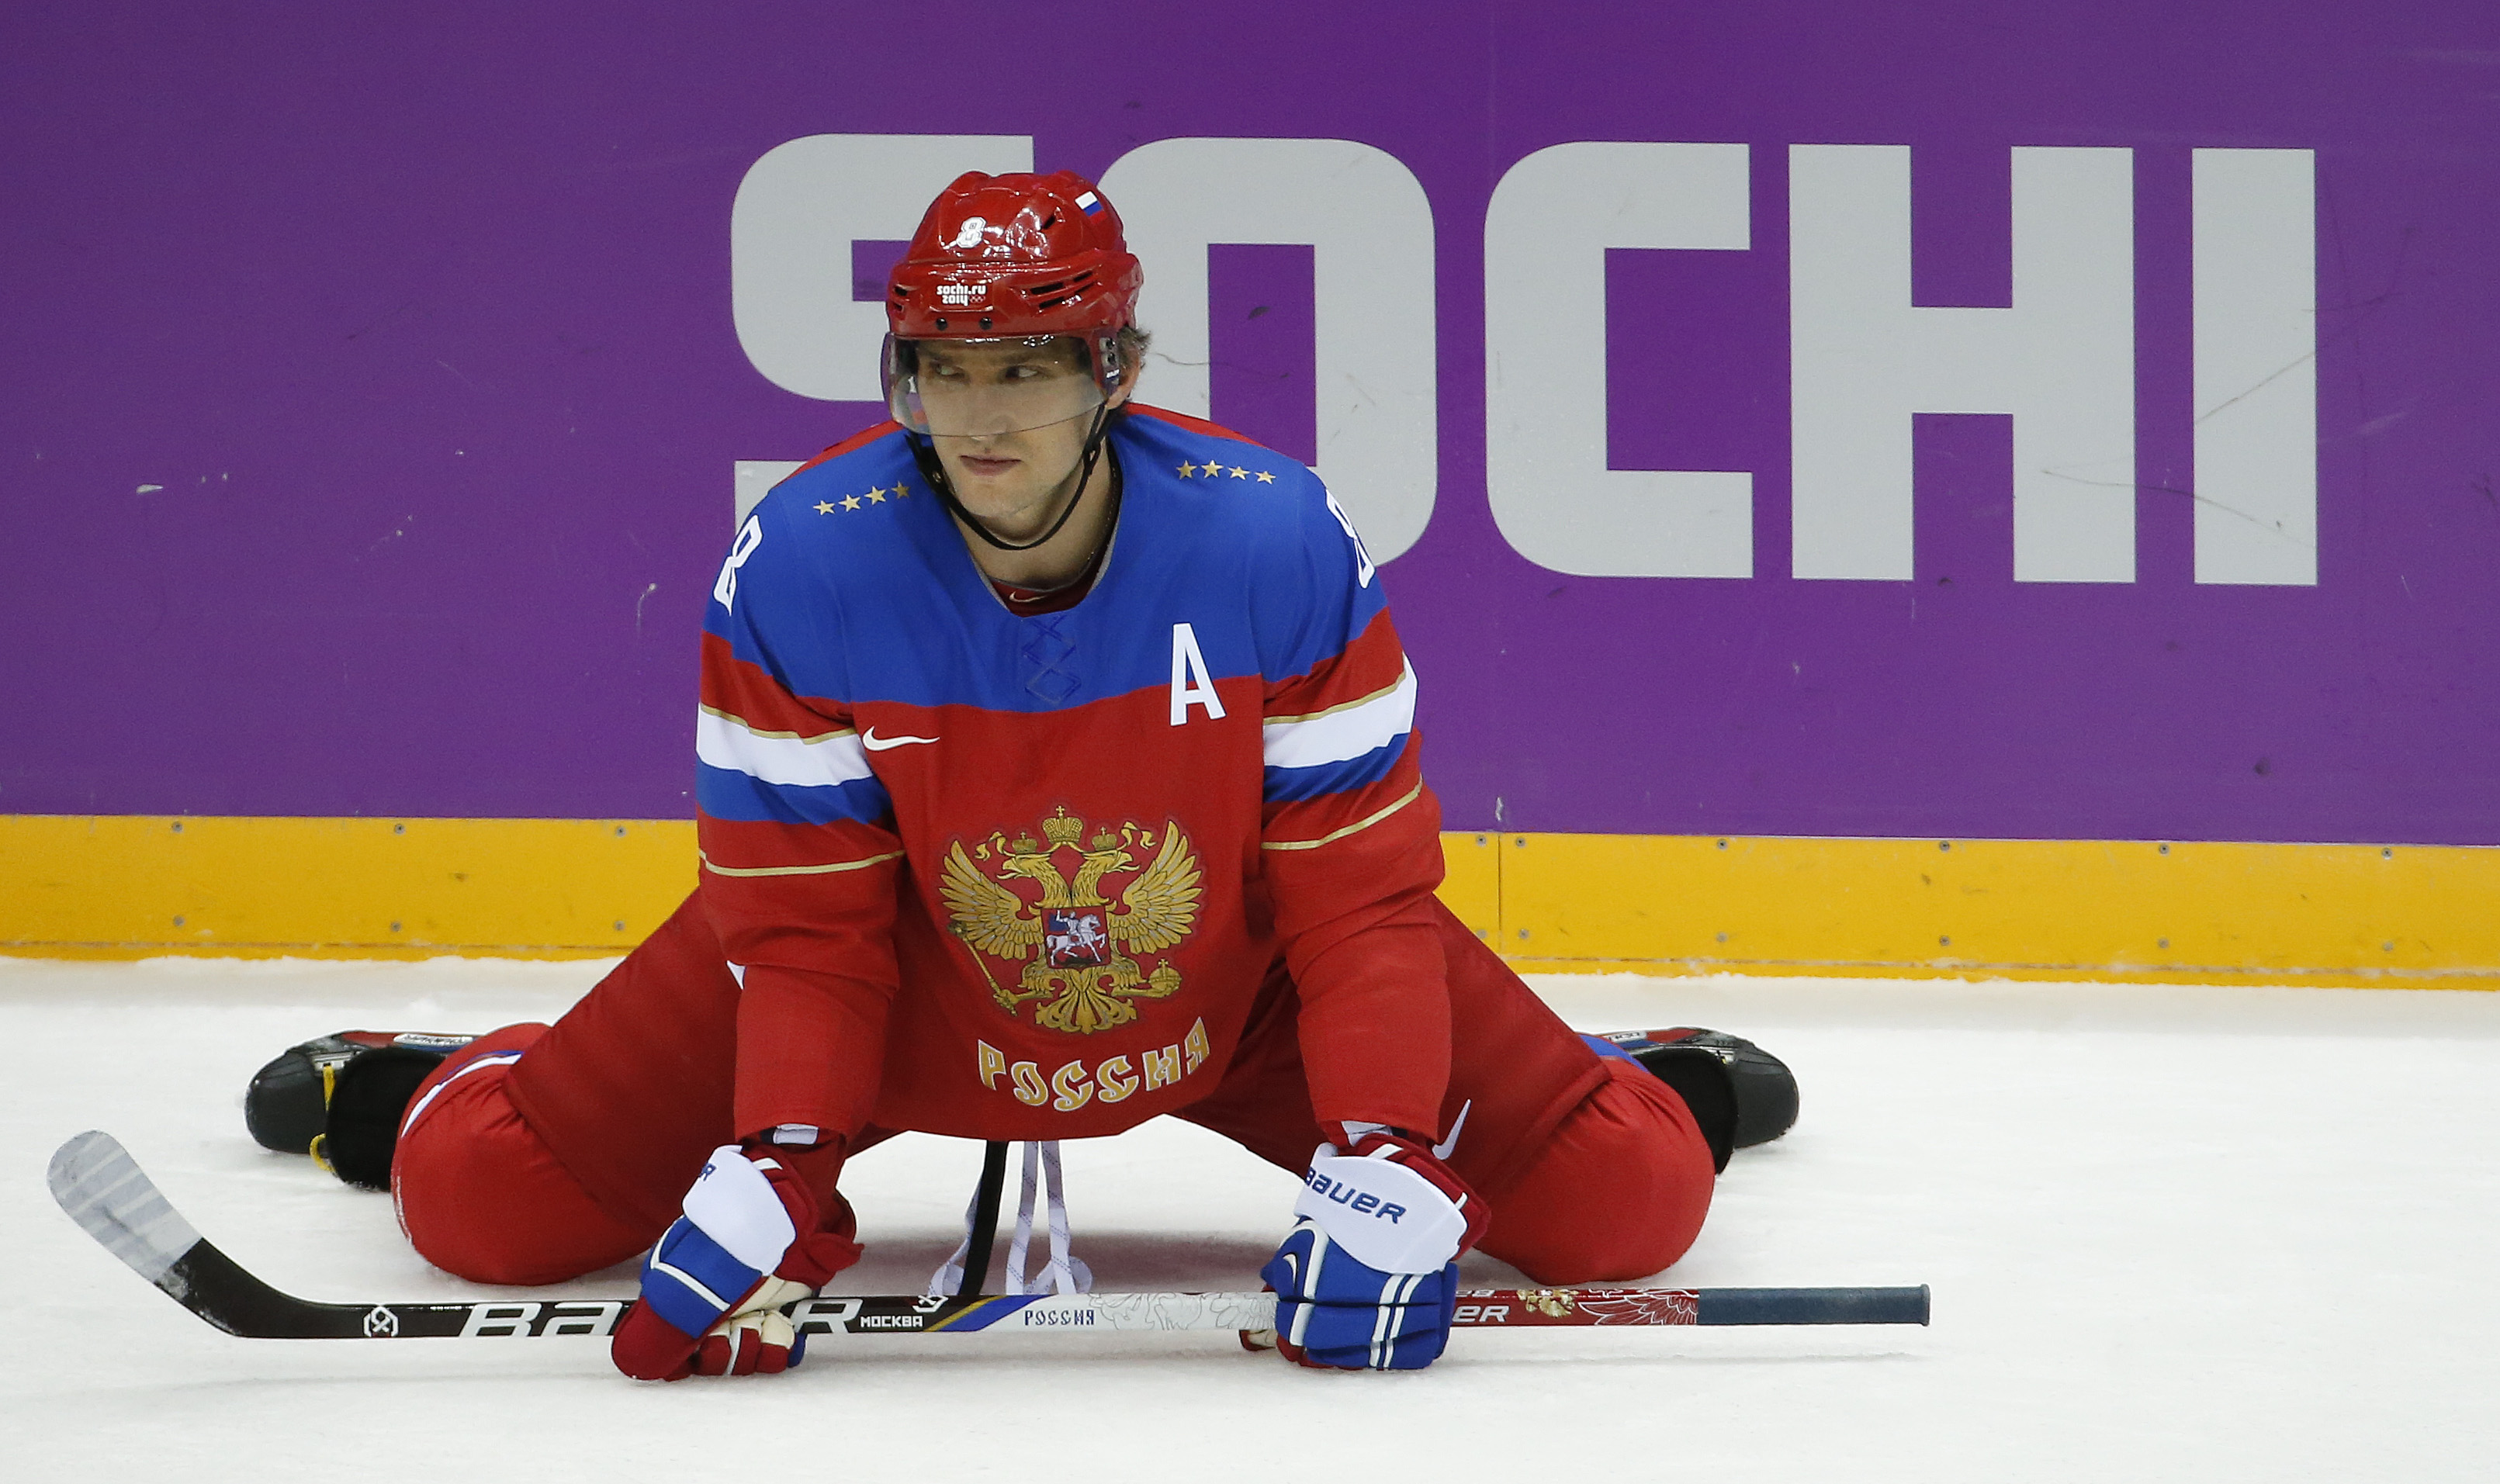 Russia forward Alexander Ovechkin stretches before playing against Slovenia in a men's ice hockey game at the 2014 Winter Olympics, Thursday, Feb. 13, 2014, in Sochi, Russia. (AP Photo/Mark Humphrey)